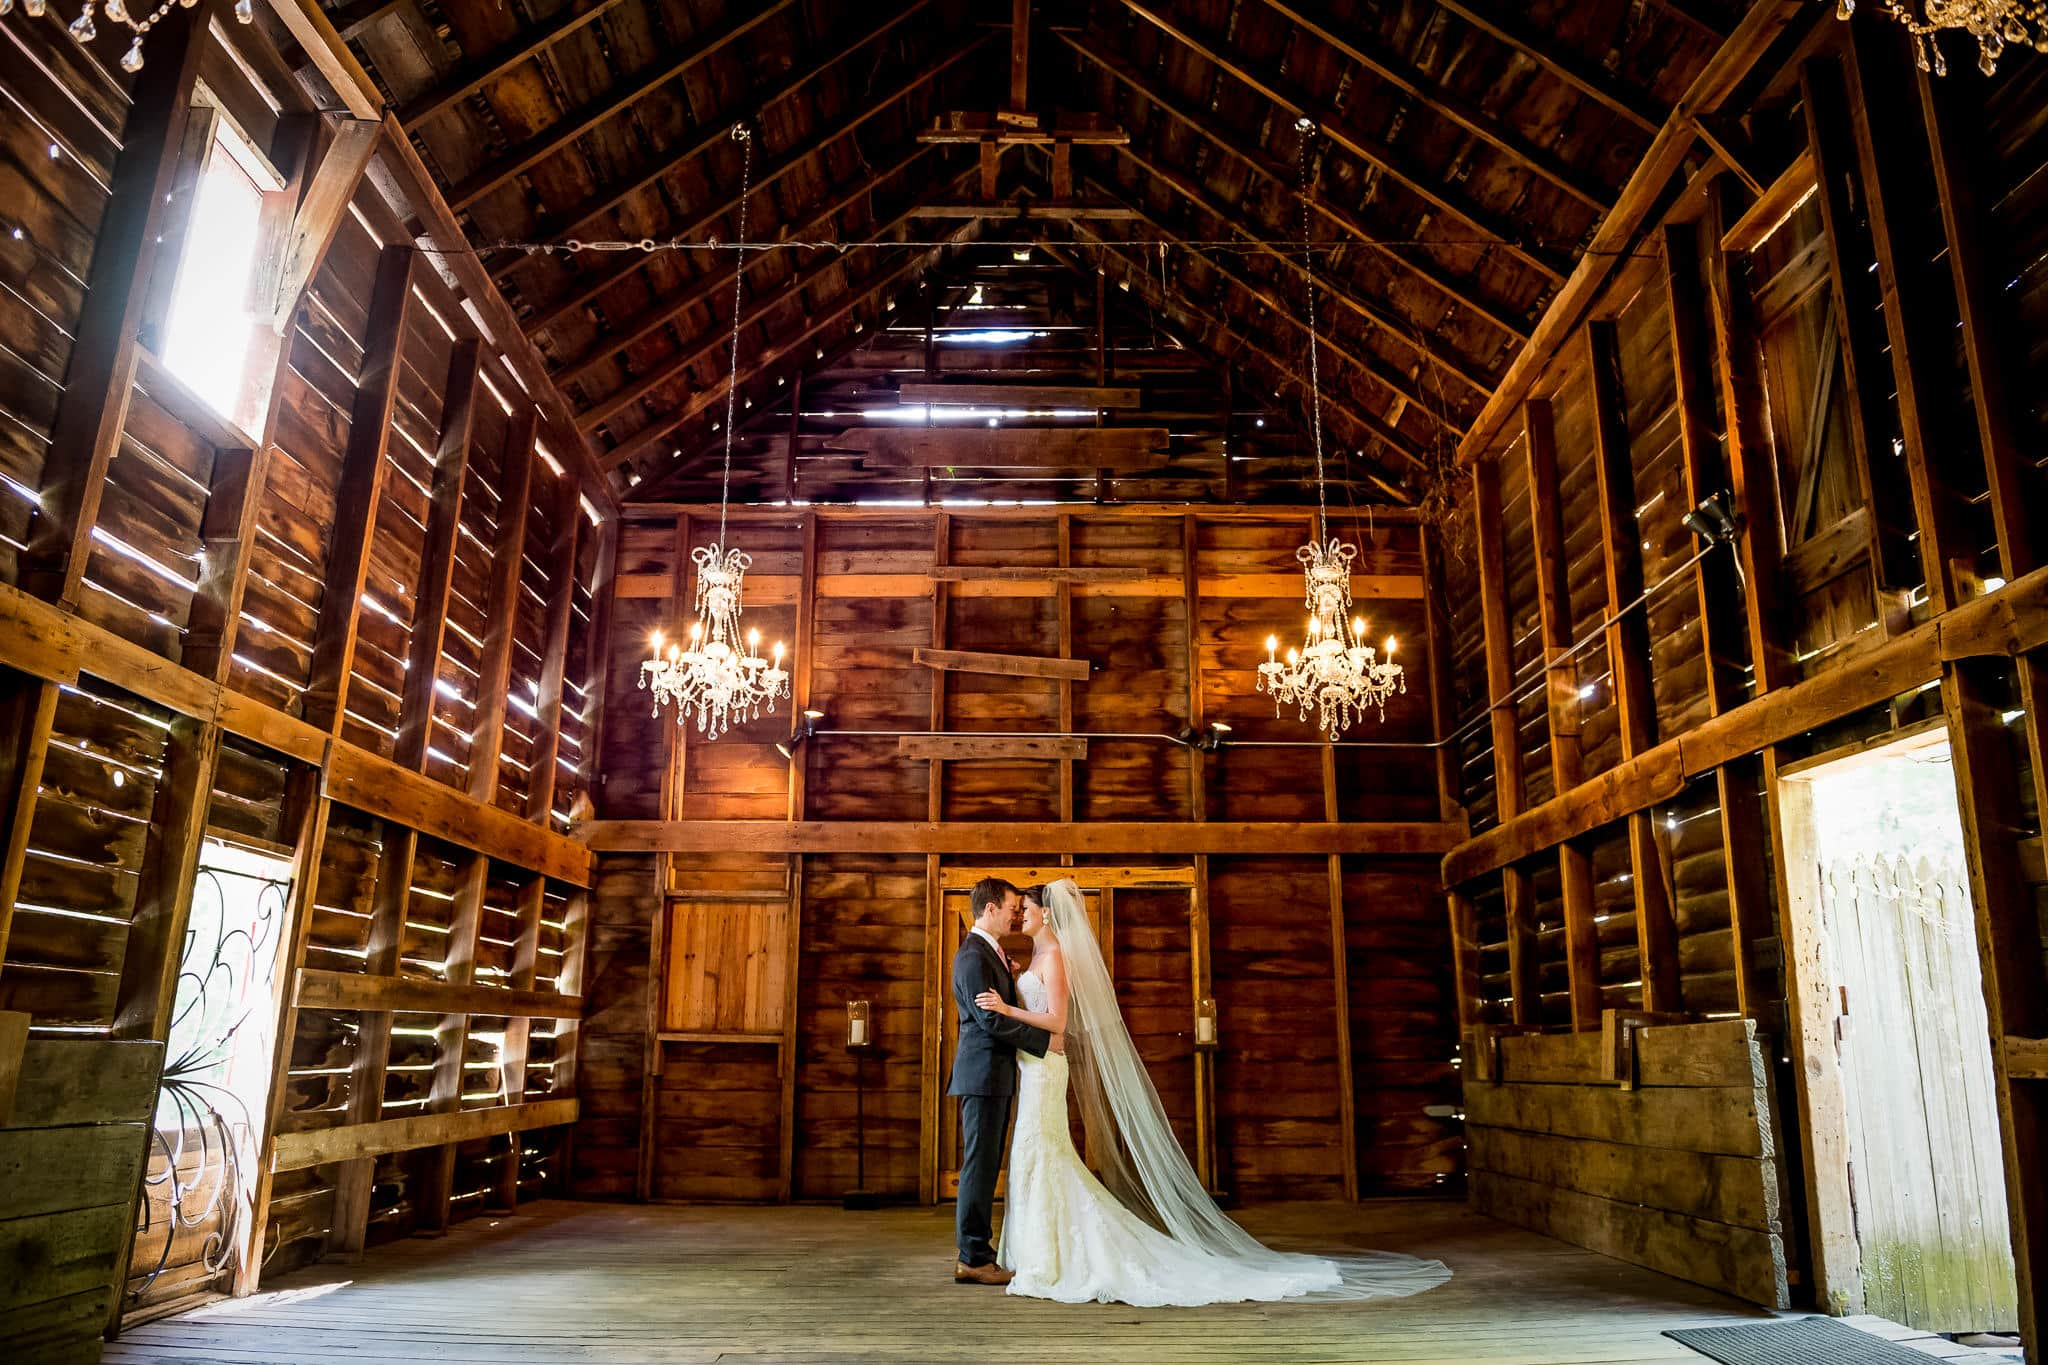 Bride and Groom hold each other closely inside the barn at Camrose Hill Flower Farm